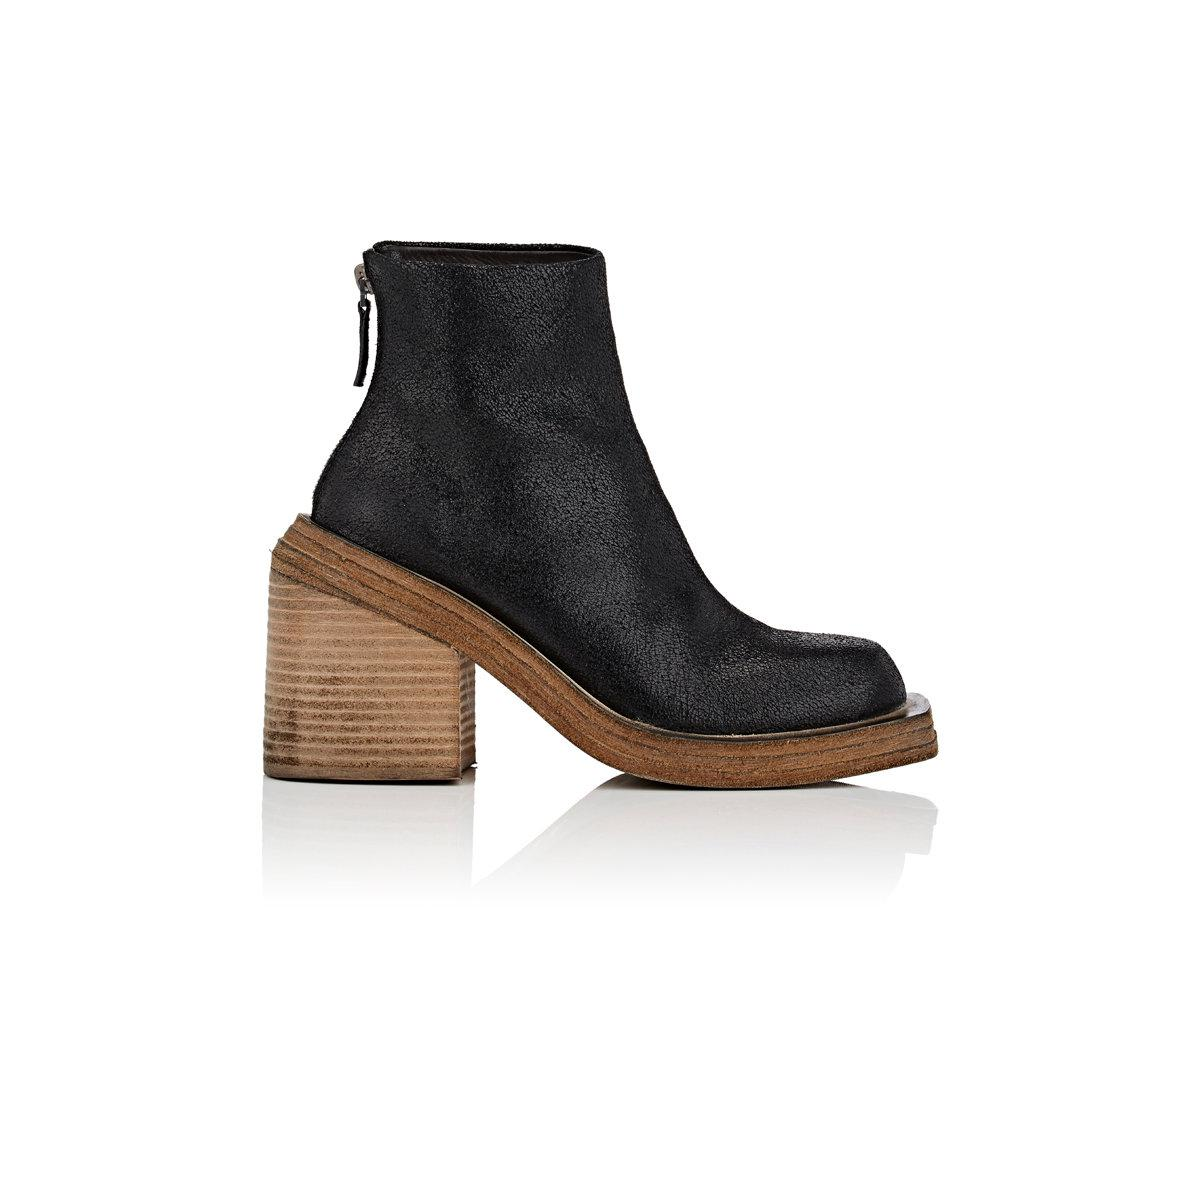 Marsèll Leather Wedge Boots fashion Style online amazon online Cheapest cheap price buy cheap excellent latest collections cheap online ky7I1r6DP